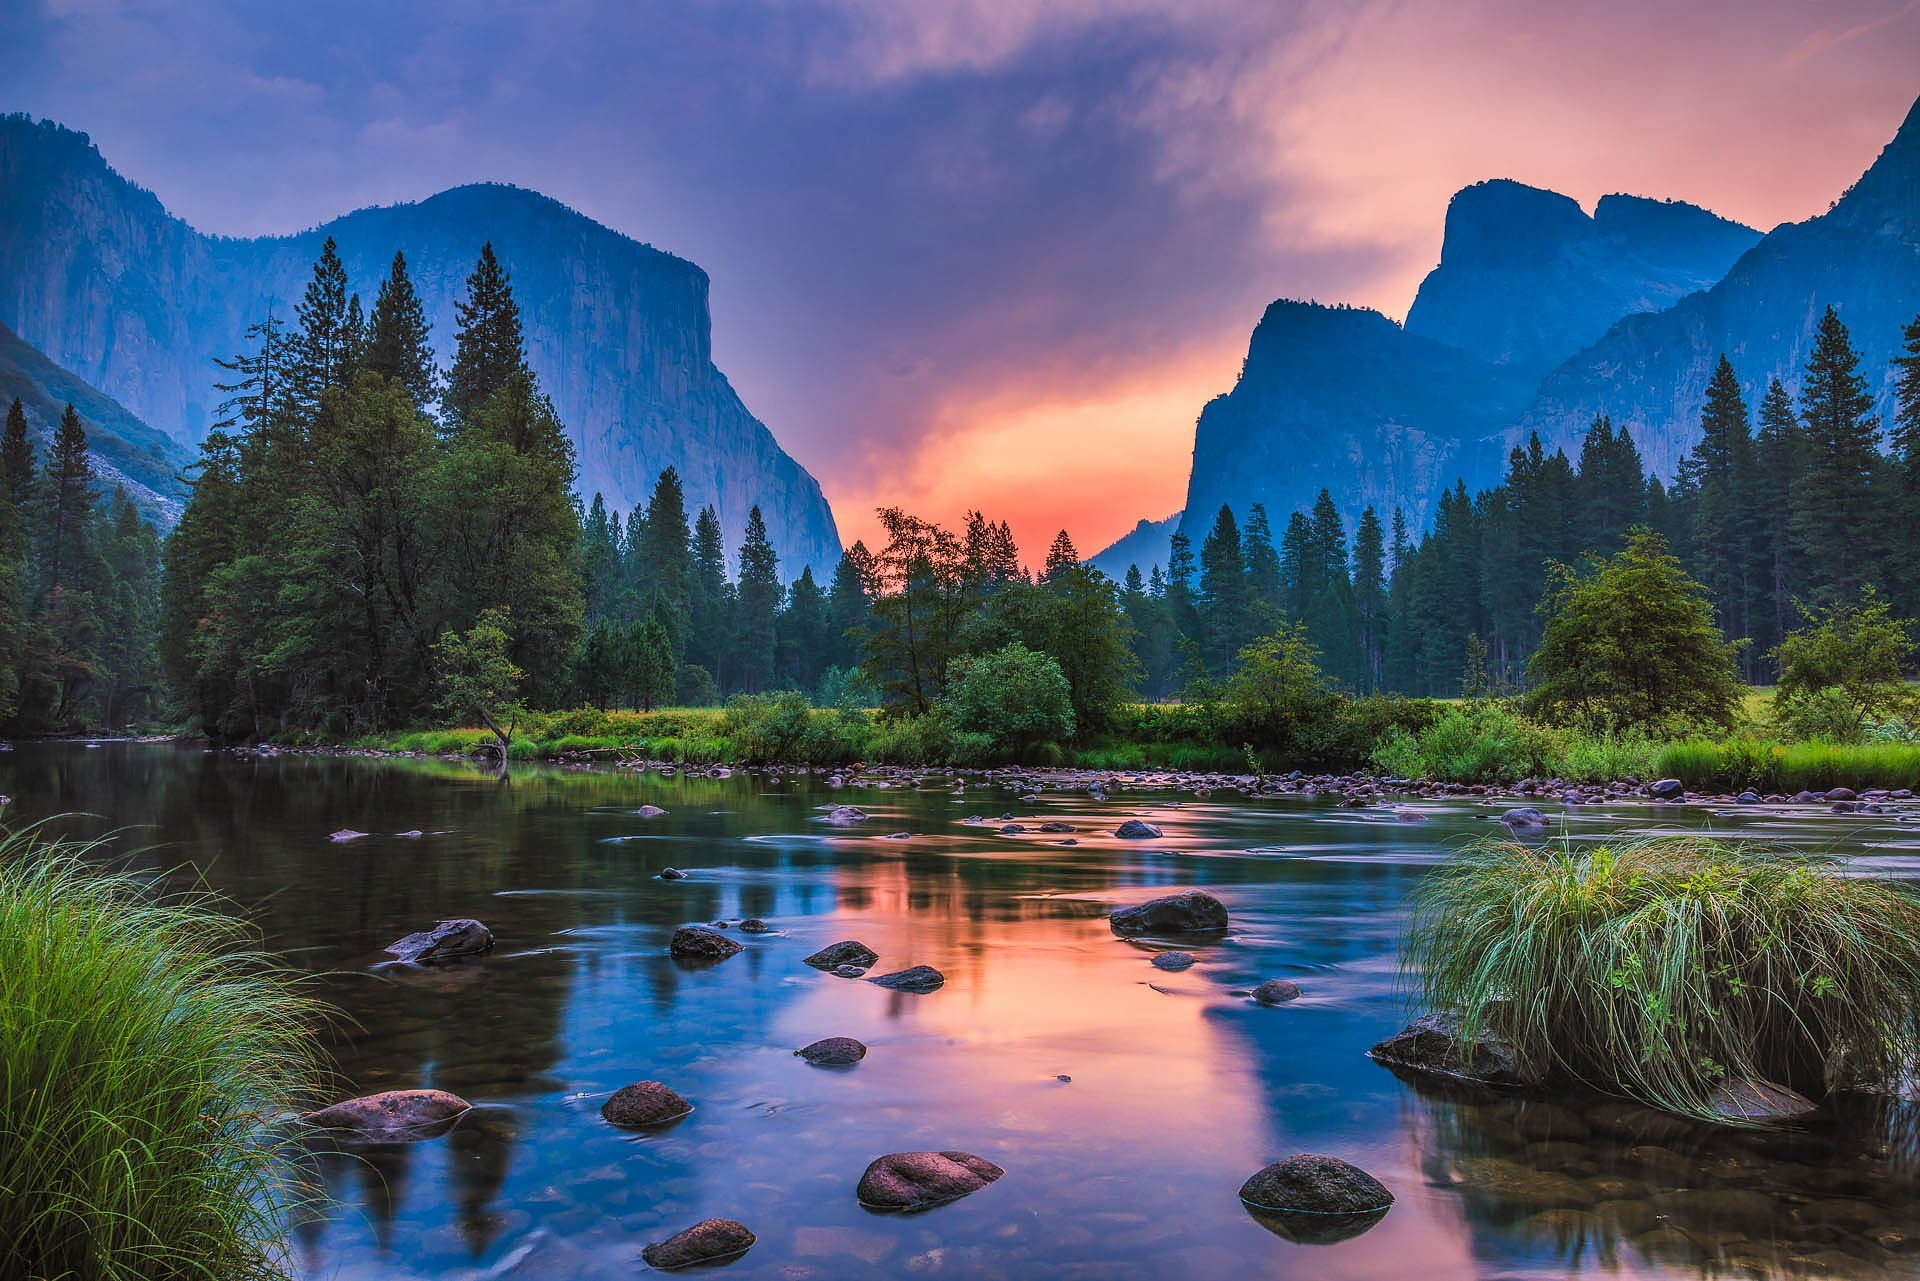 American Paint And Wallpaper Fall River Landscape Nature Sunset Mountains River Reflection